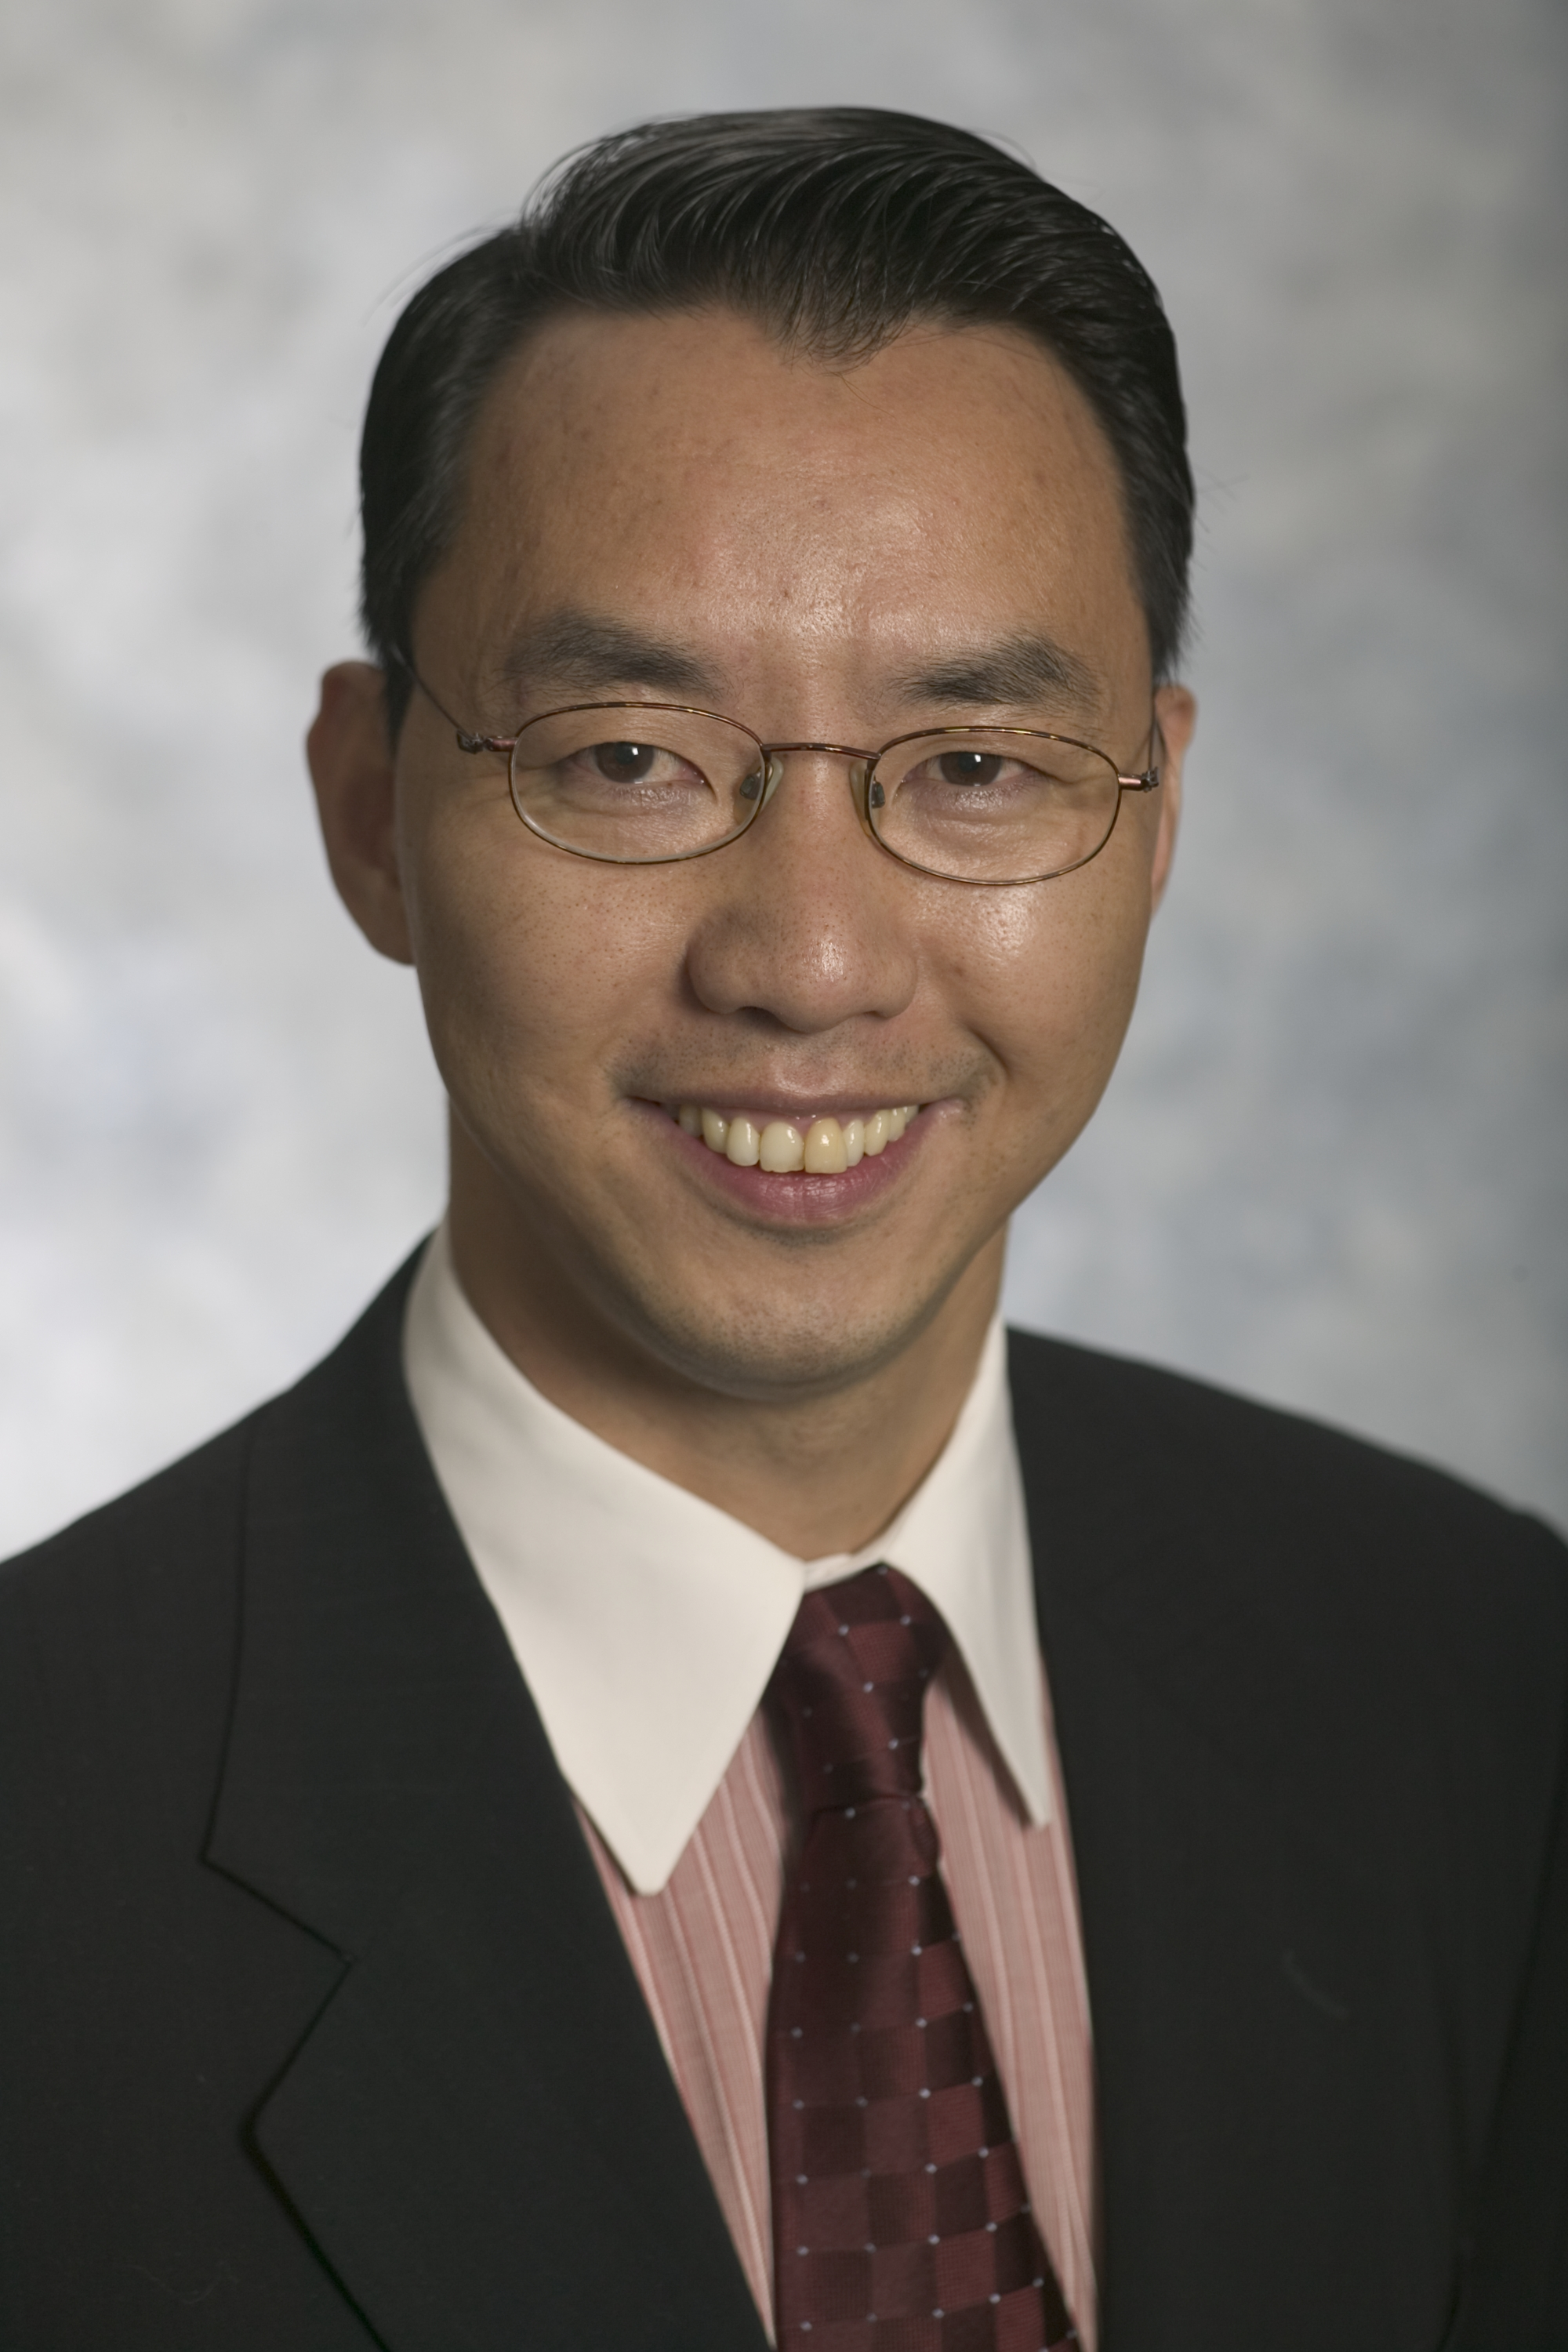 Guanxi Zheng has rejoined Dorsey & Whitney as Of Counsel in the Firm's Corporate Group in the Seattle office. (Photo: Dorsey & Whitney LLP)